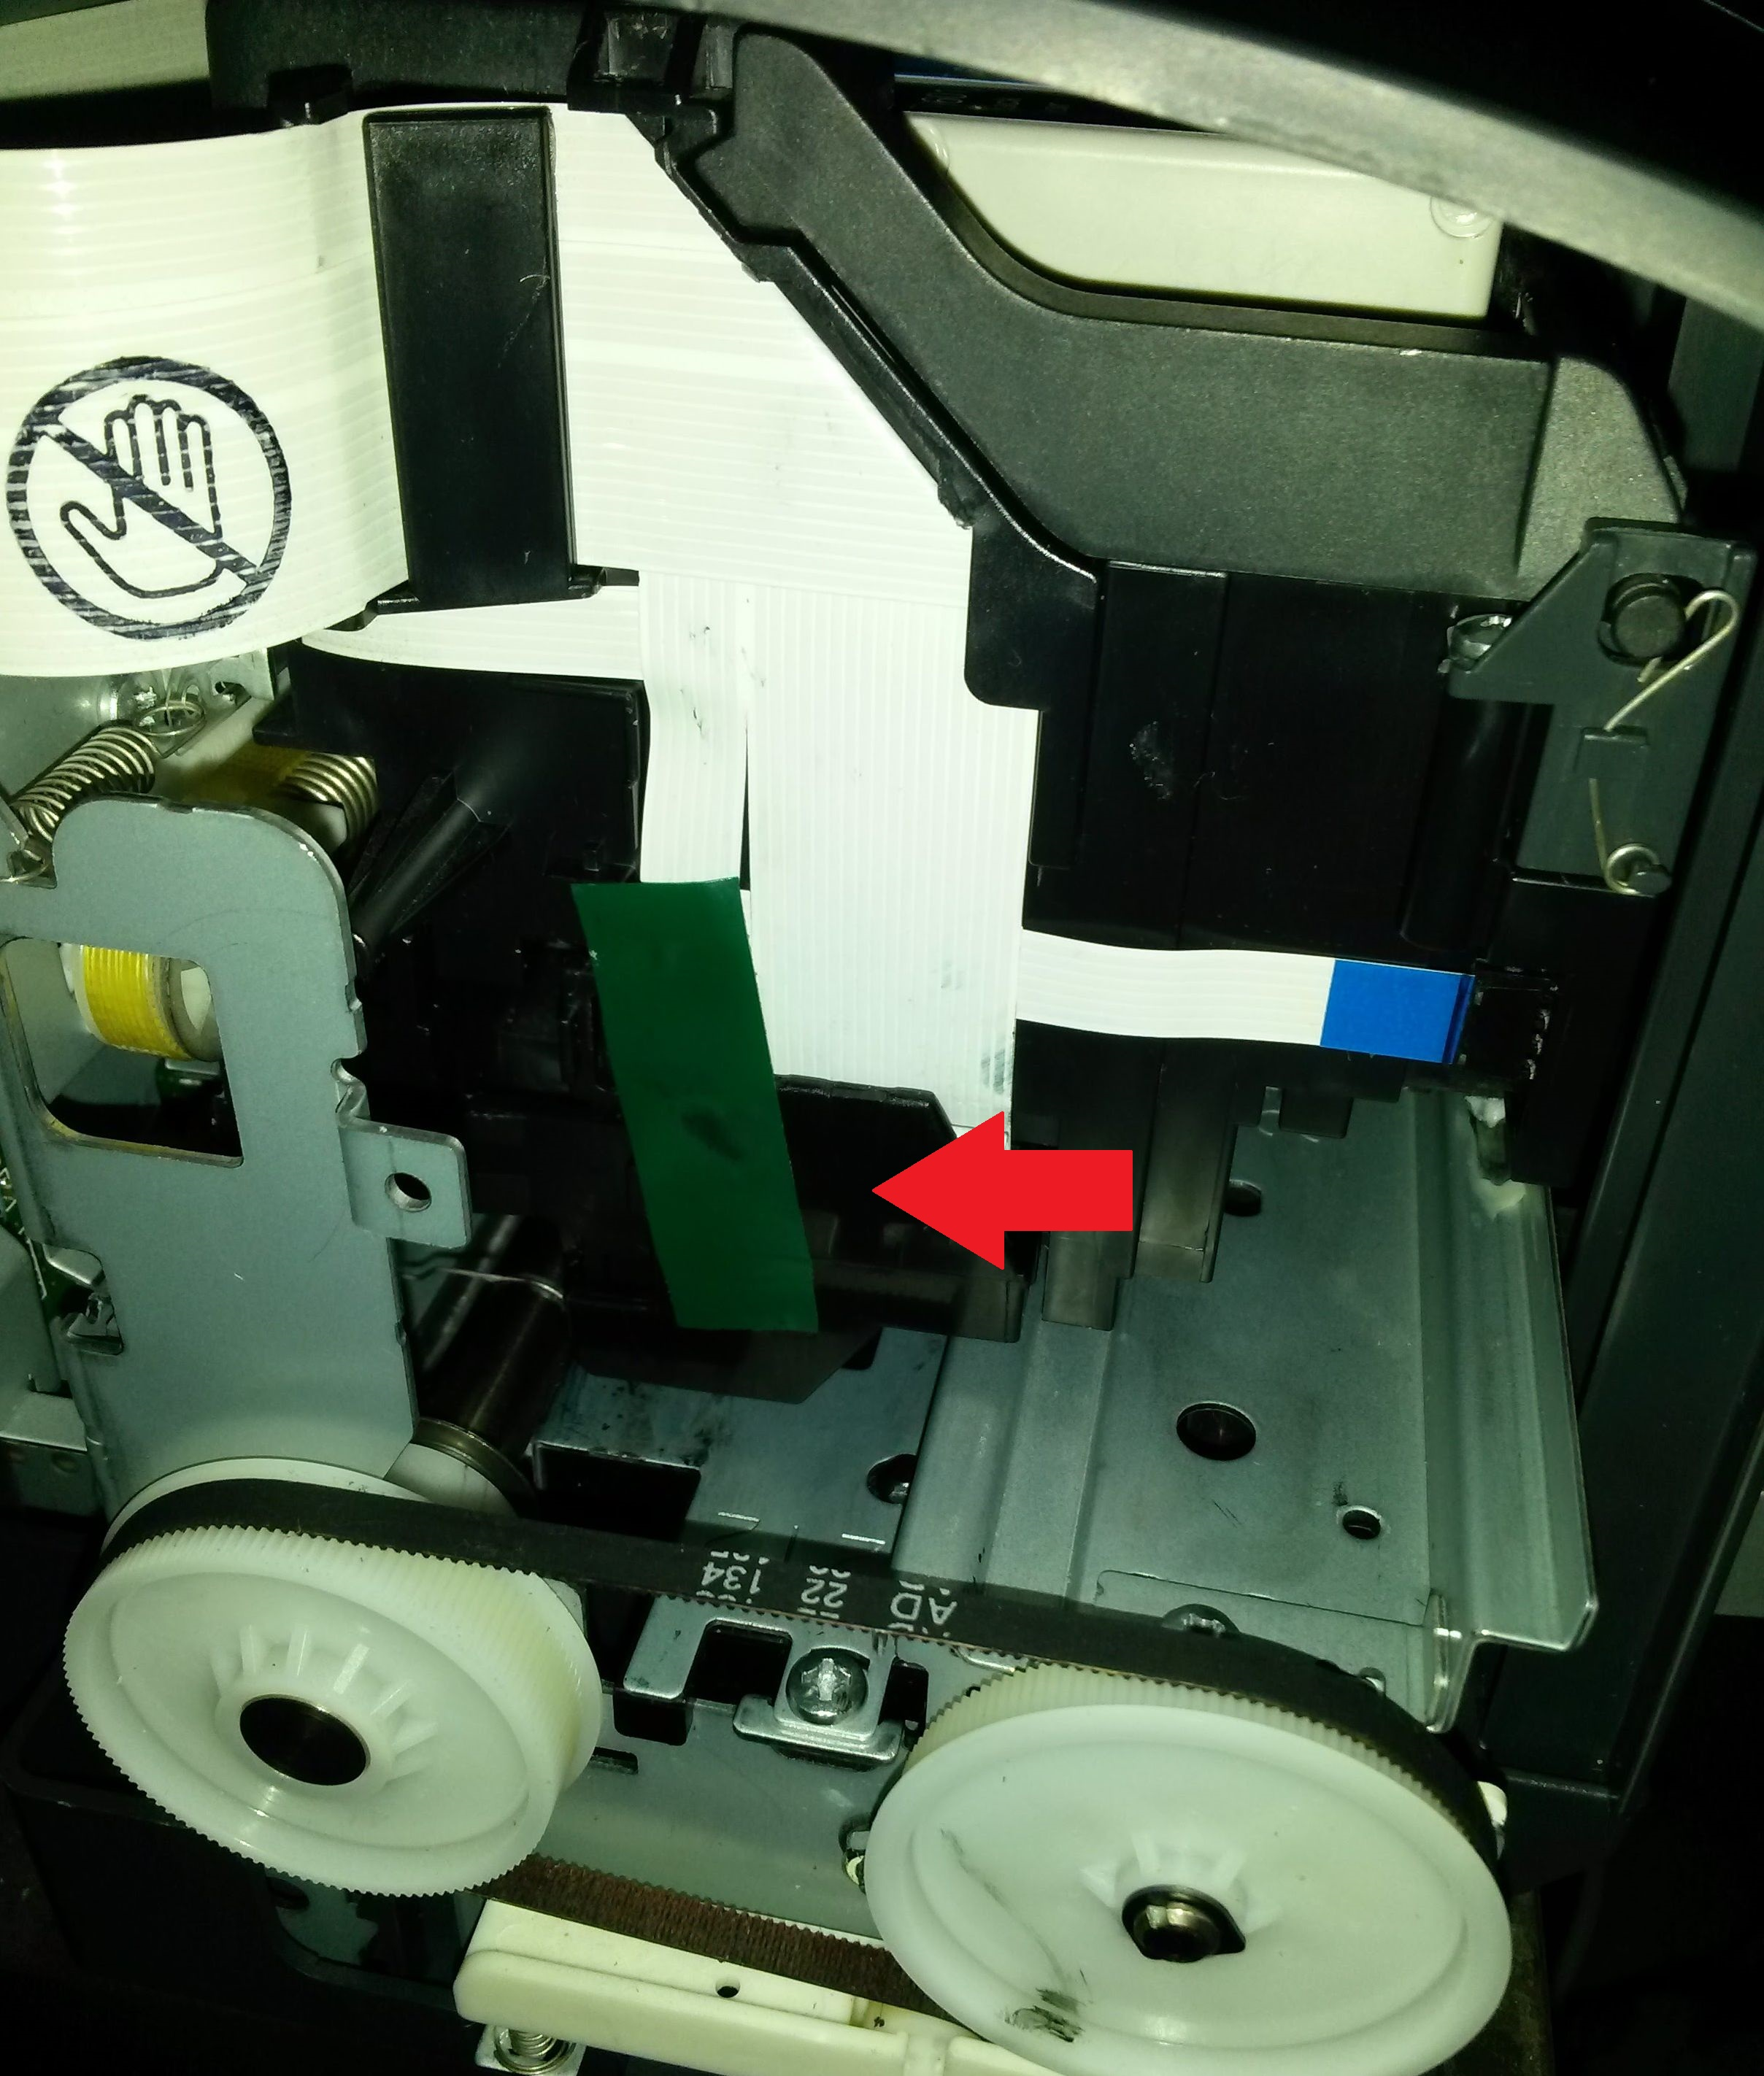 Disassembly (partial) and clean Epson C88+ Printer